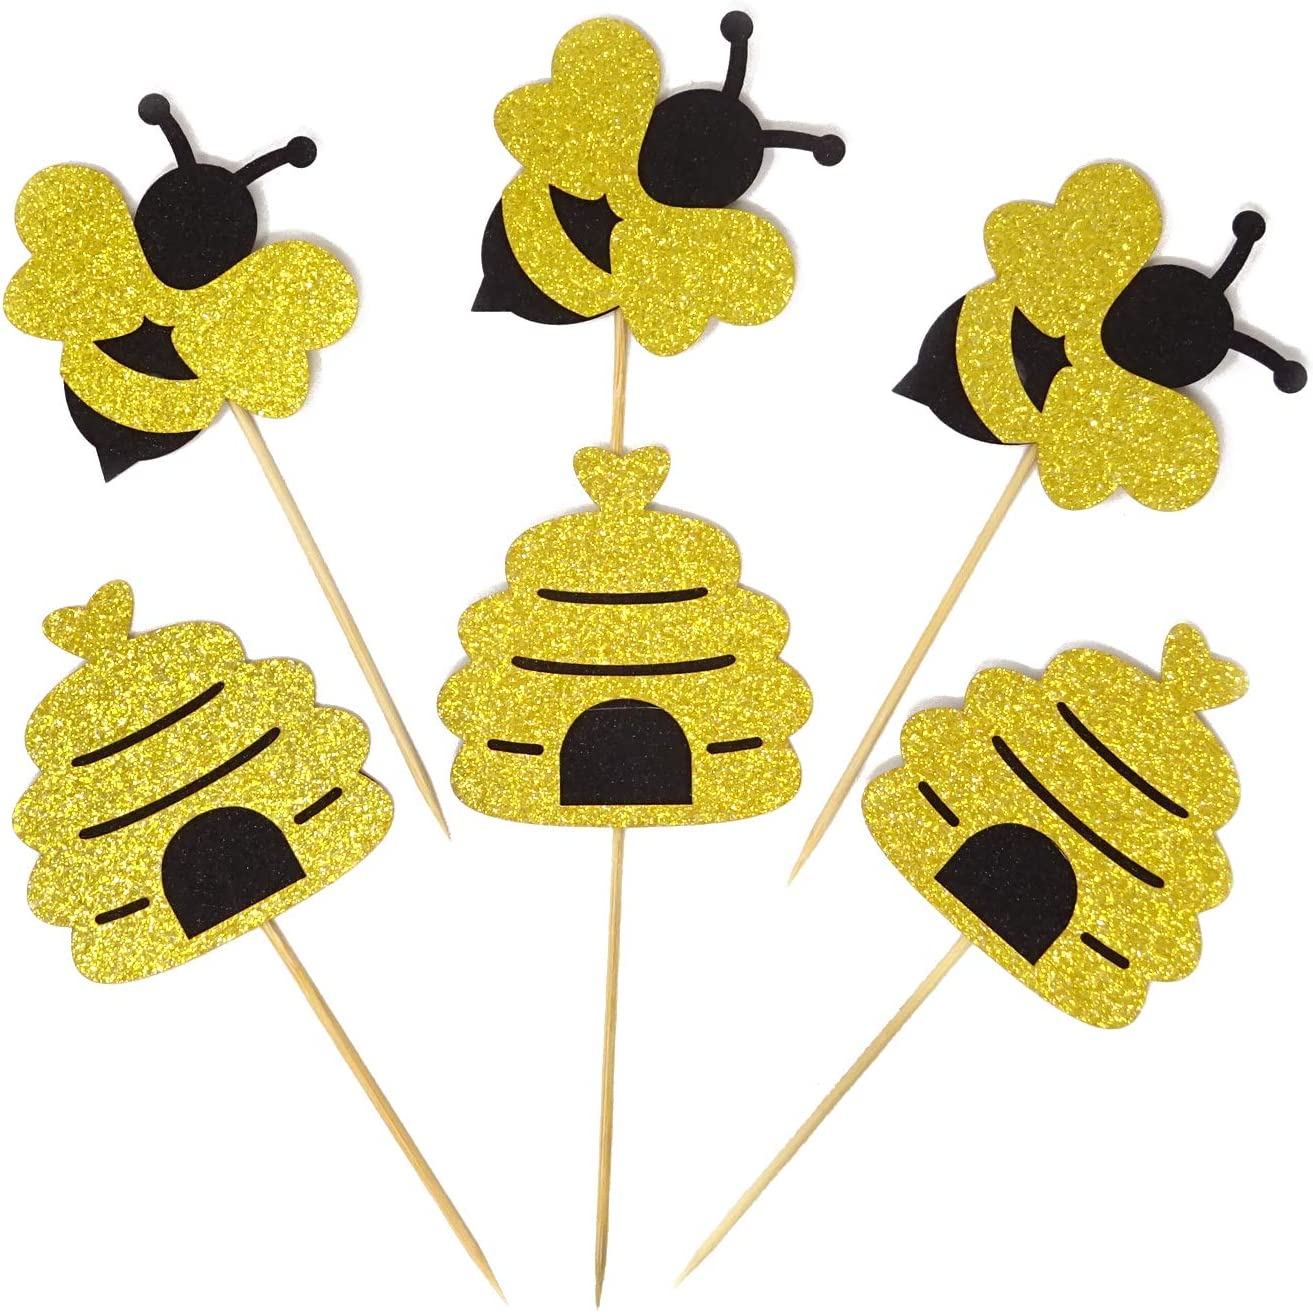 Honbay 40PCS Glitter Bumble Bee Honeycomb Cupcake Toppers Cake Decorations Food Picks for Bee Themed Parties, Baby Gender Reveal Parties, Baby Showers, Weddings, Birthdays, etc